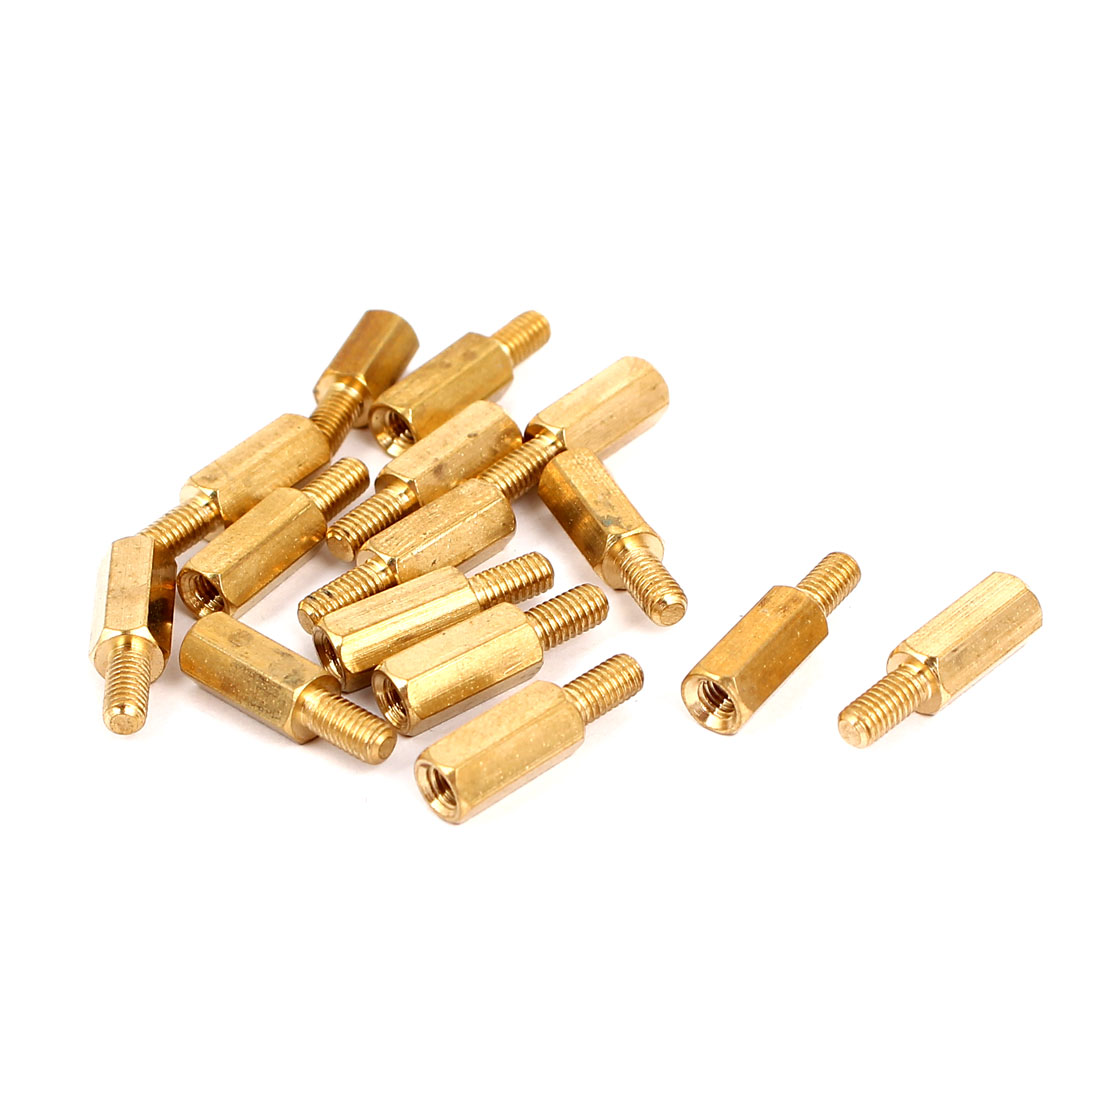 M3 Male to Female Thread Insulated Brass Standoff Hexagonal Spacer 10+6mm Long 15pcs